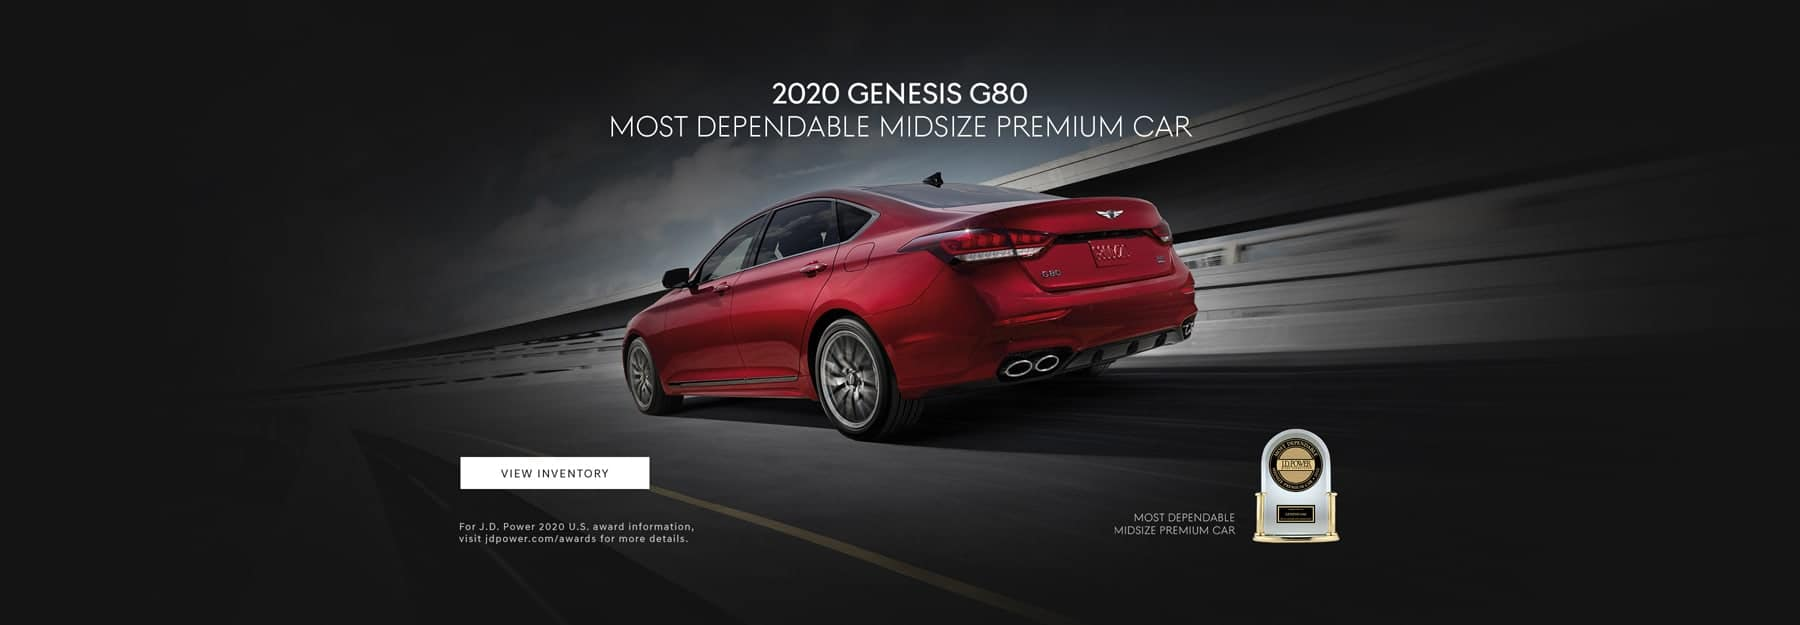 2020 Genesis G80 Most Reliable Midsize Premium car